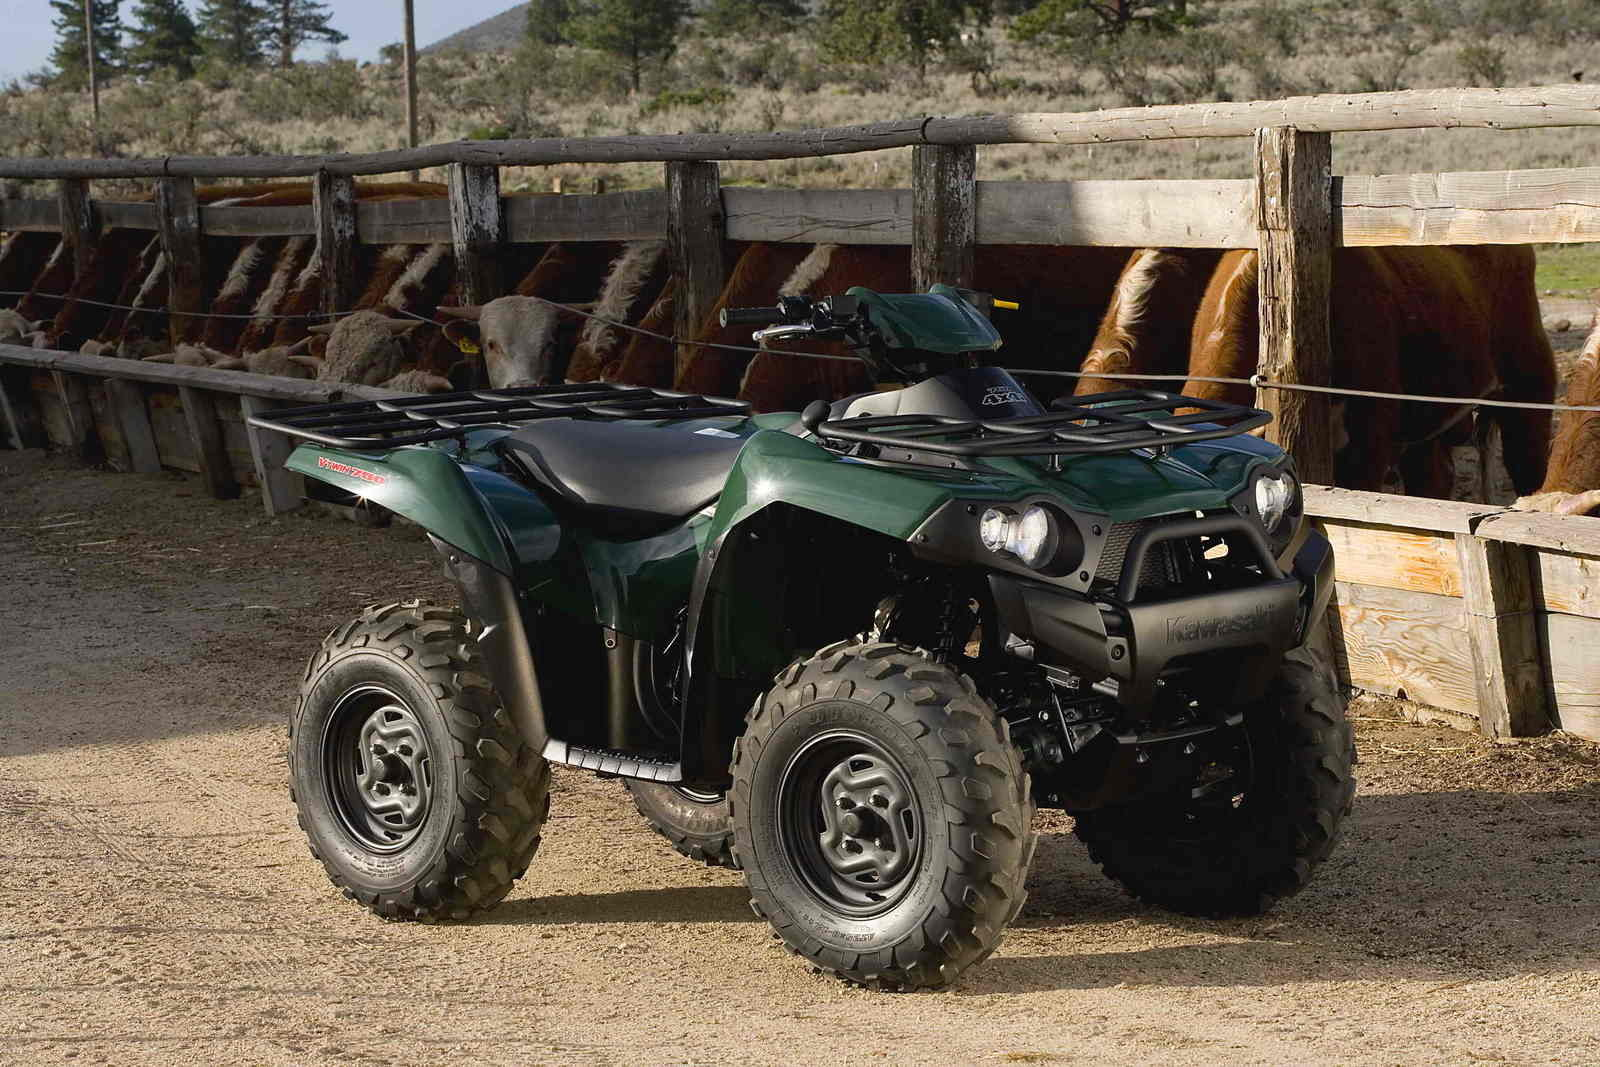 2007 kawasaki brute force 750 4x4i picture 158869 motorcycle review top speed. Black Bedroom Furniture Sets. Home Design Ideas